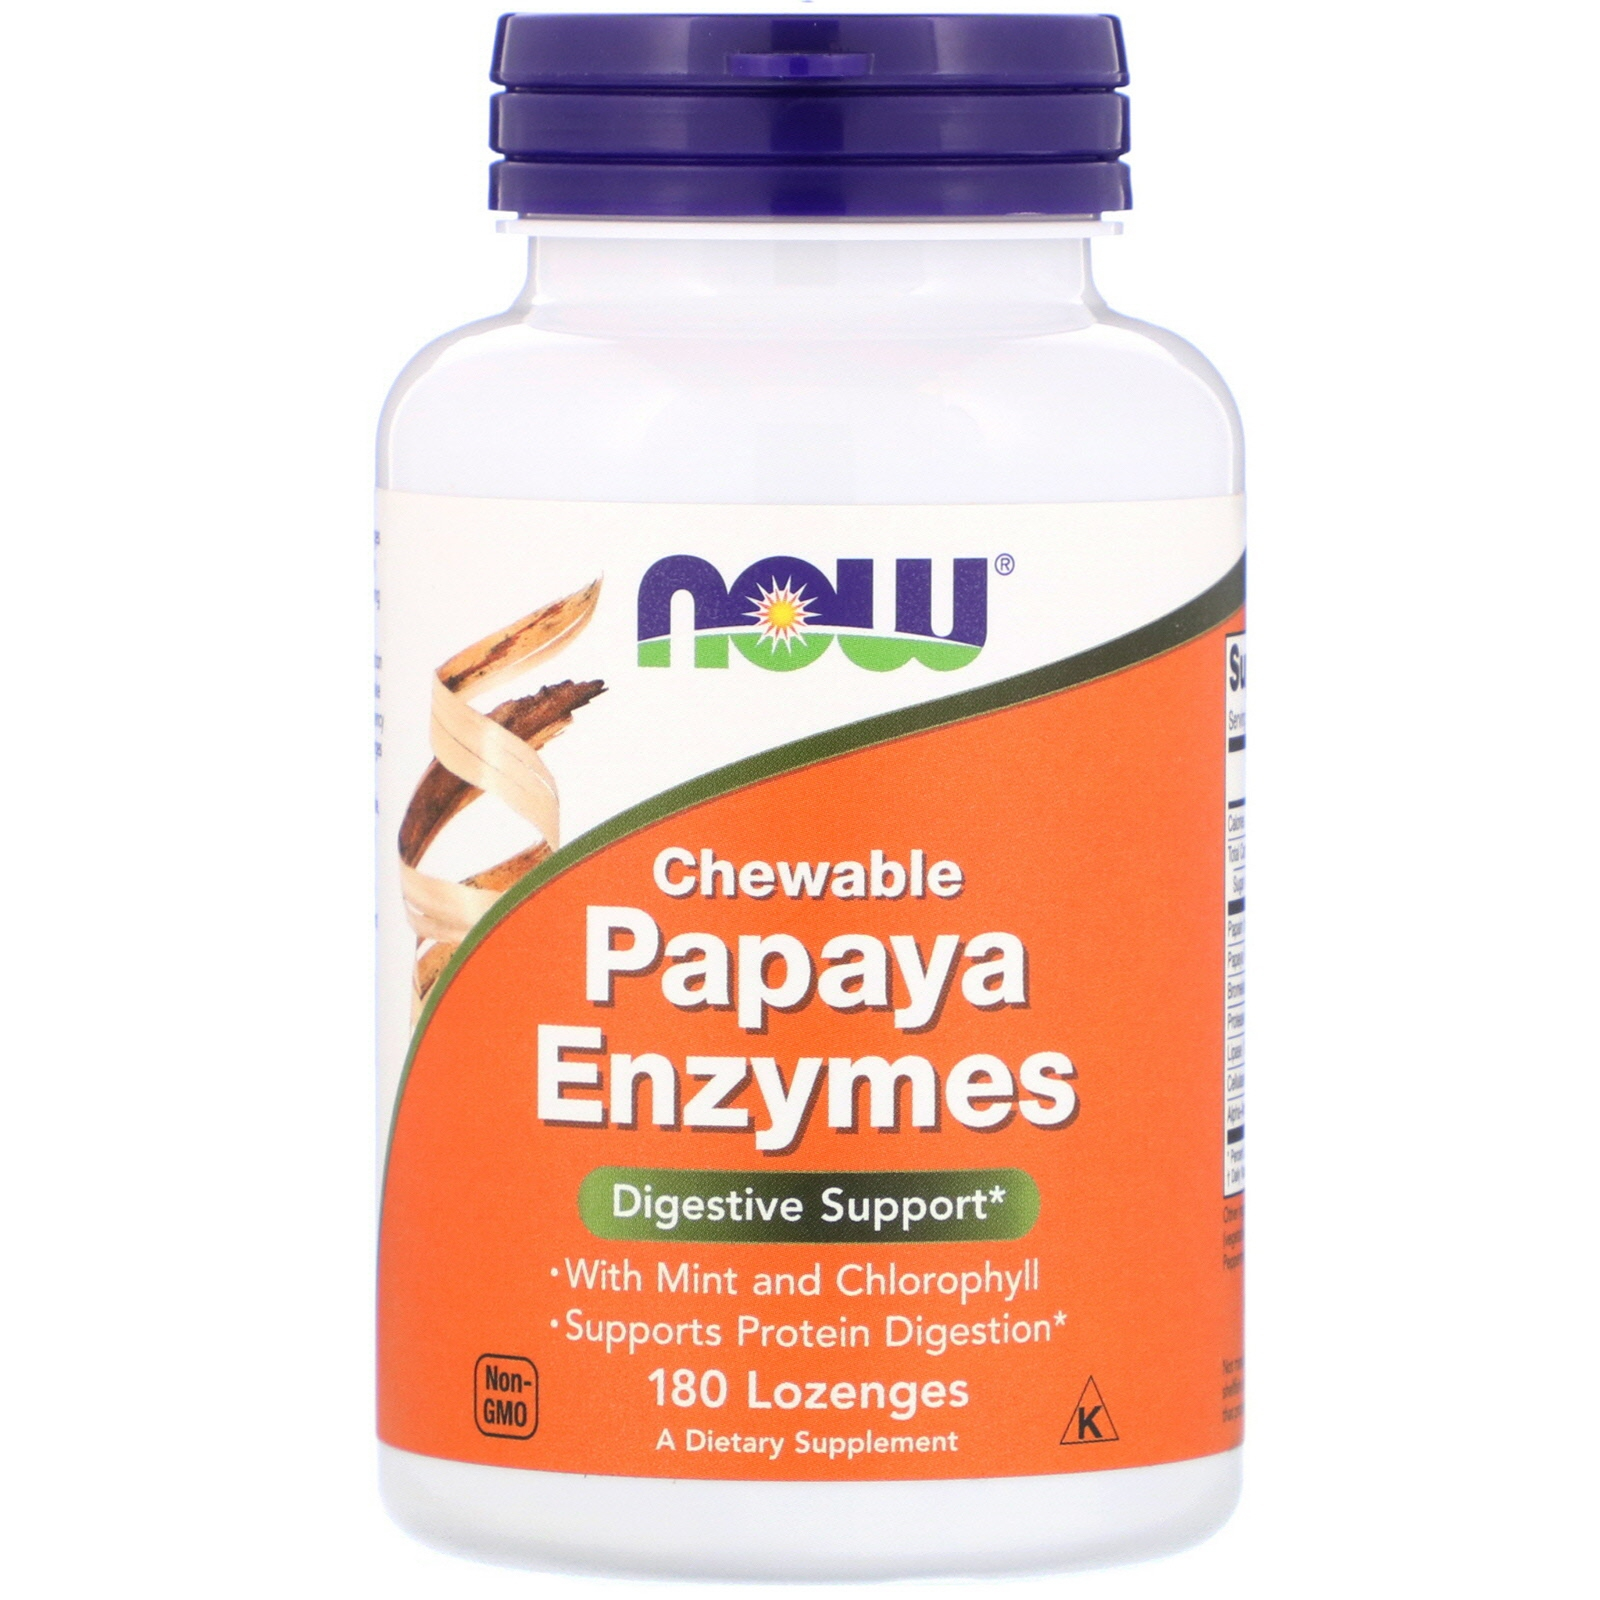 Chewable Papaya Enzymes (180 lozenges) Now Foods